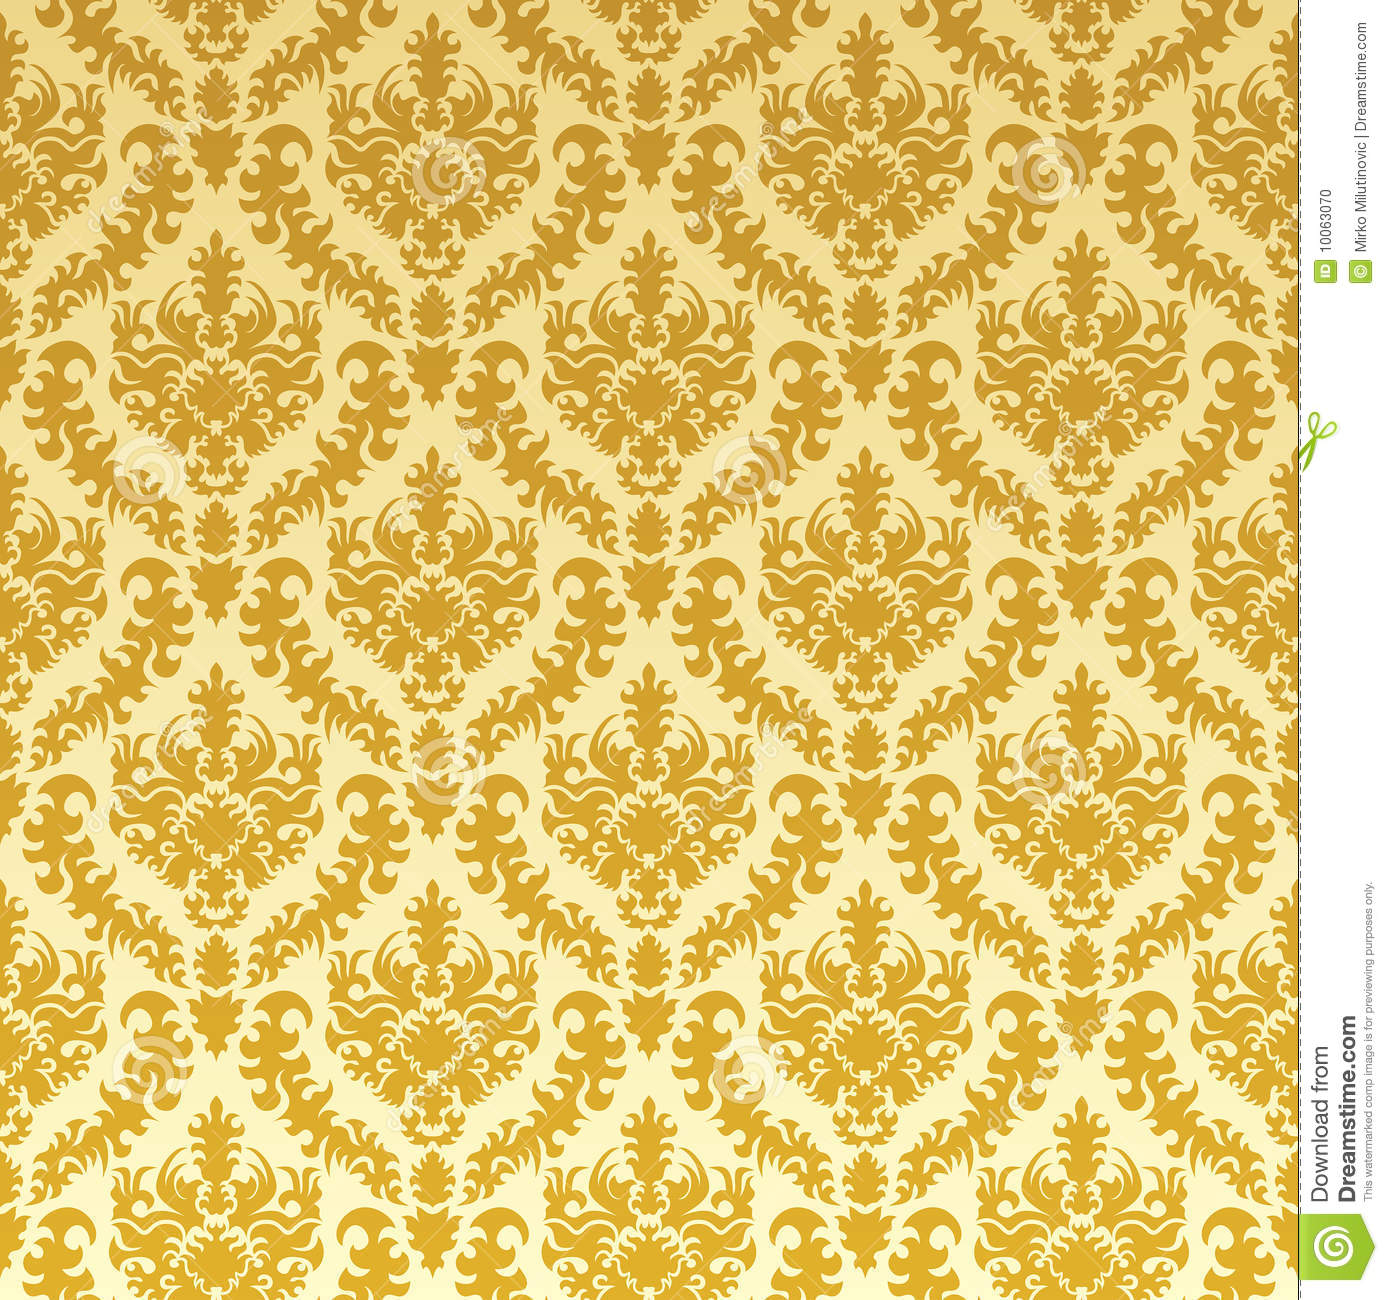 Graphics little yellow patterns on pinterest vintage for Gold wallpaper designs